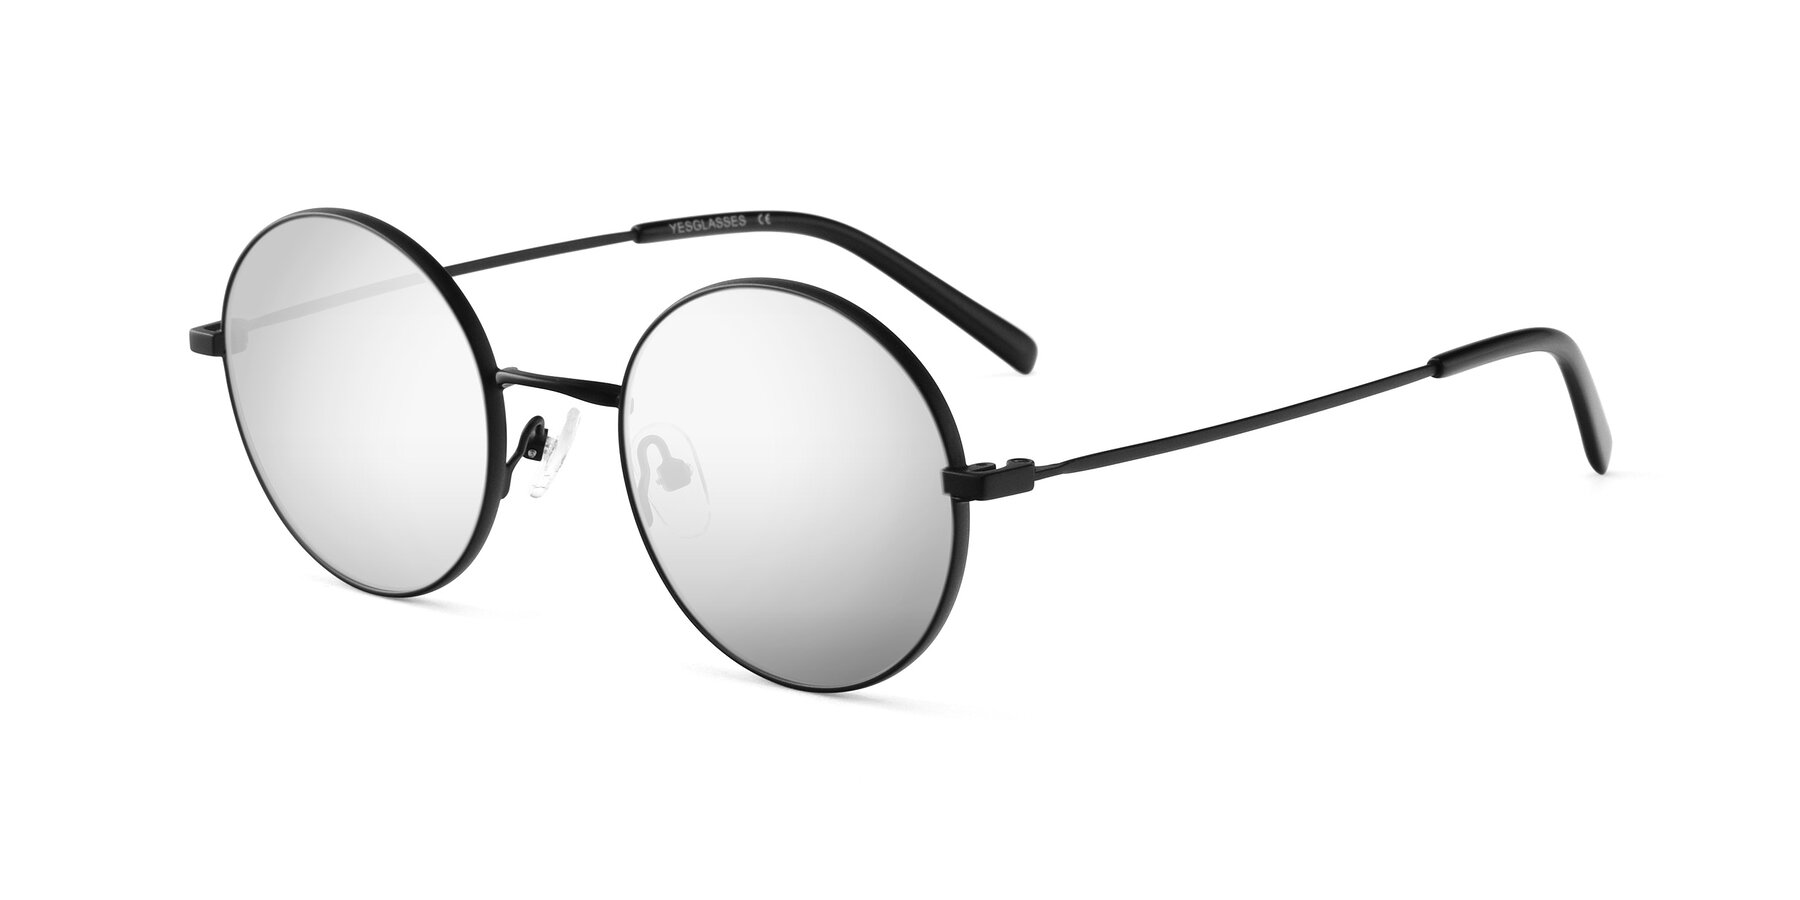 Angle of Moore in Black with Silver Mirrored Lenses